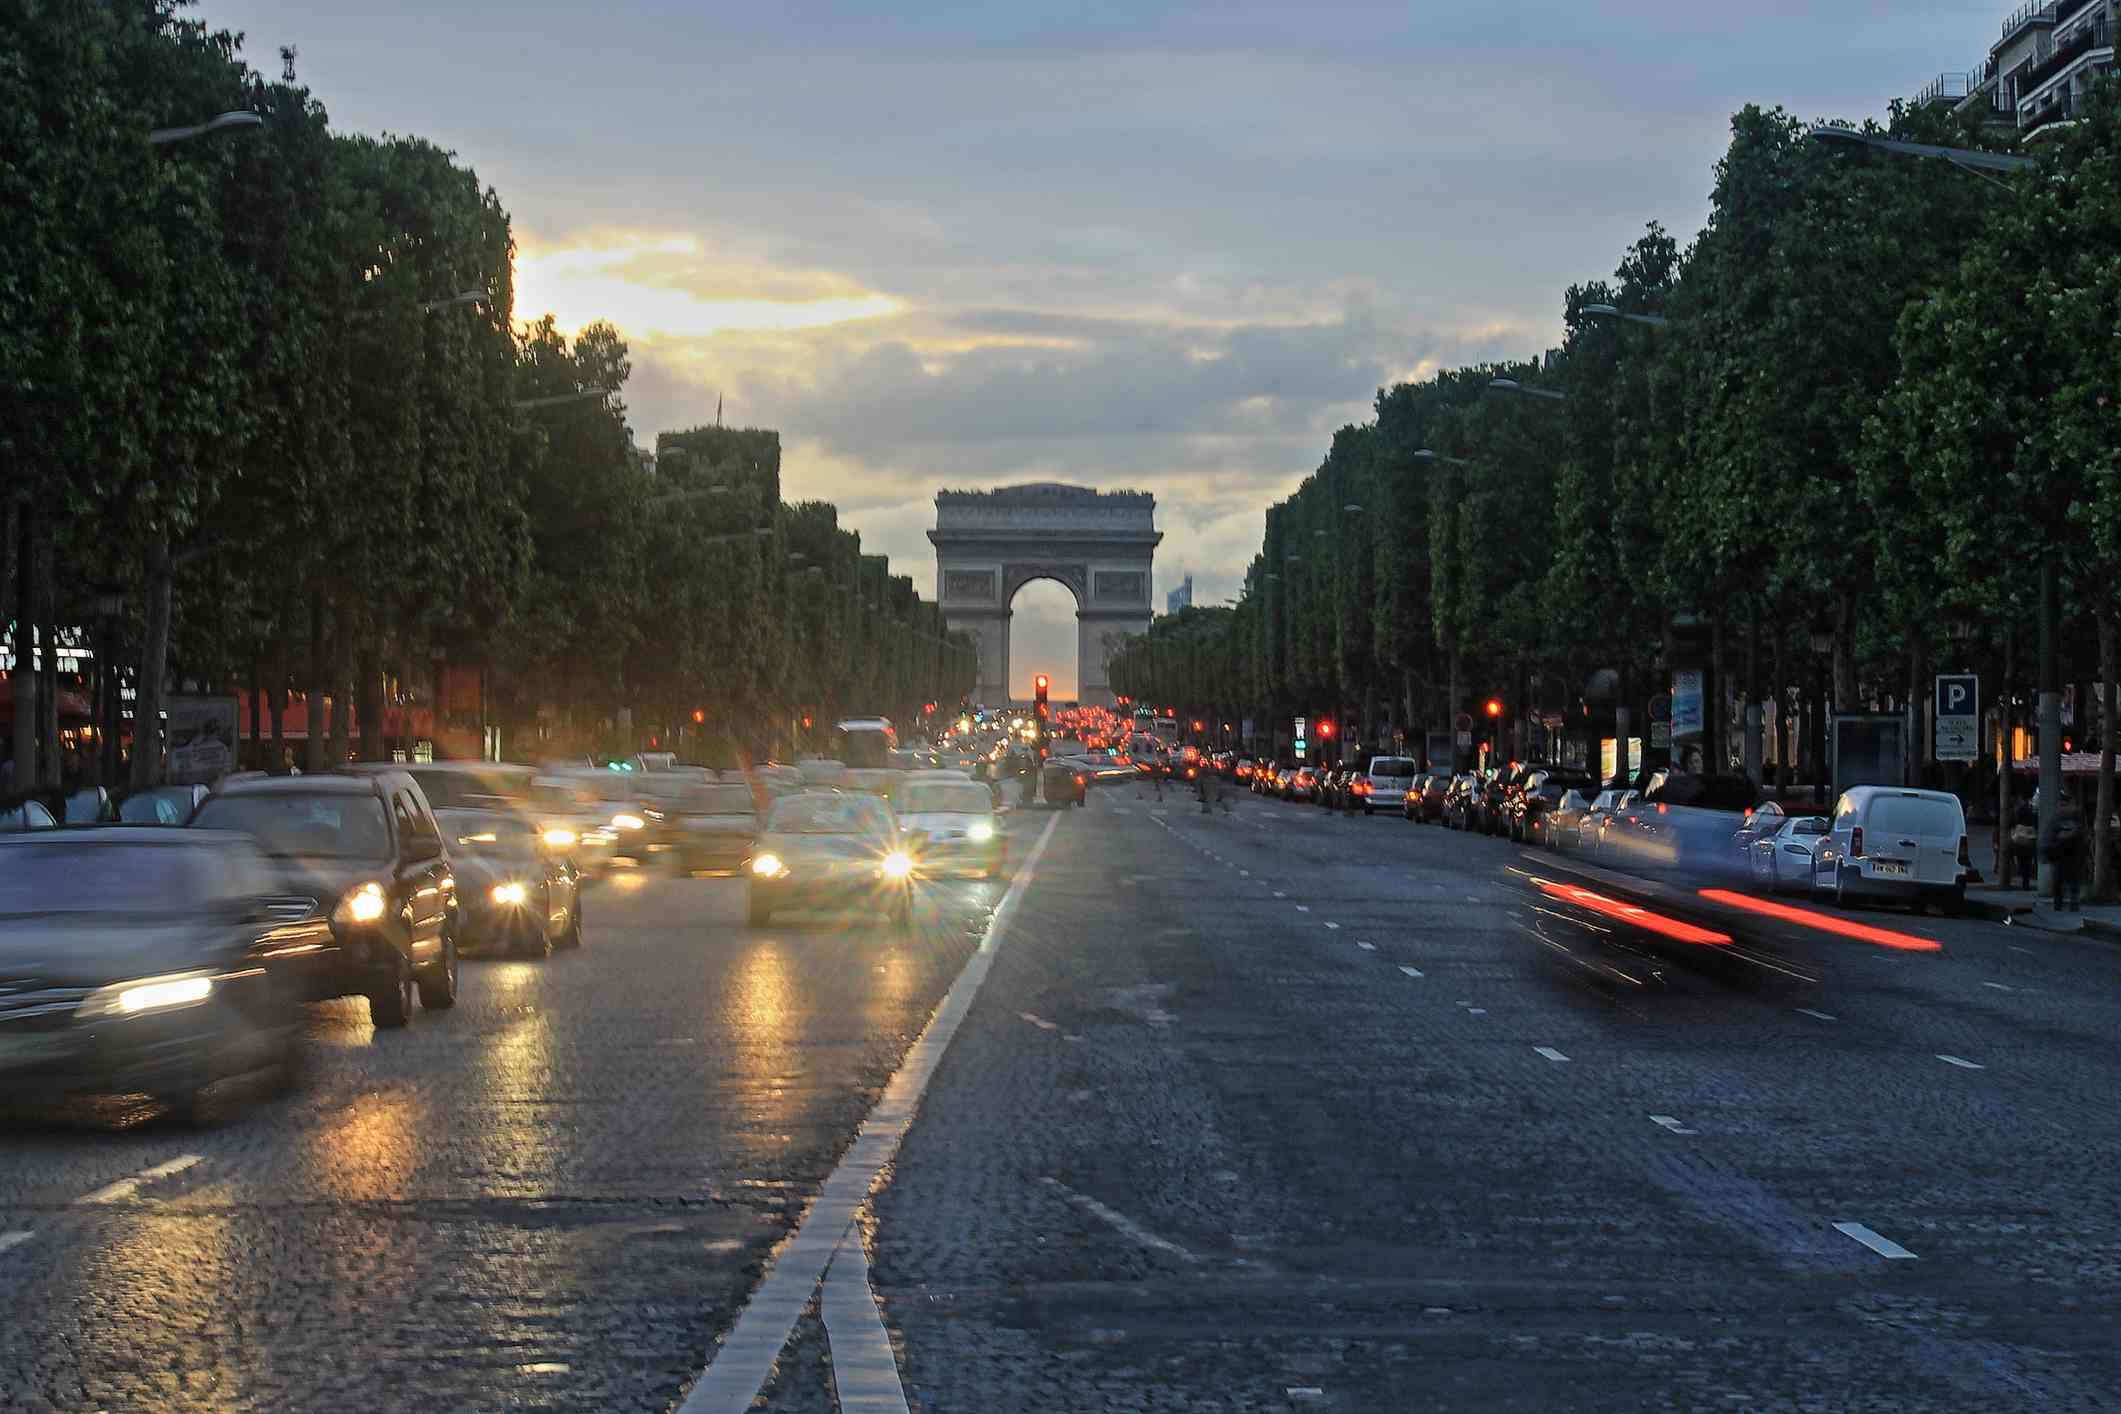 Some streets in Paris, such as the Champs-Elysées, can be quite challenging for visitors to navigate.